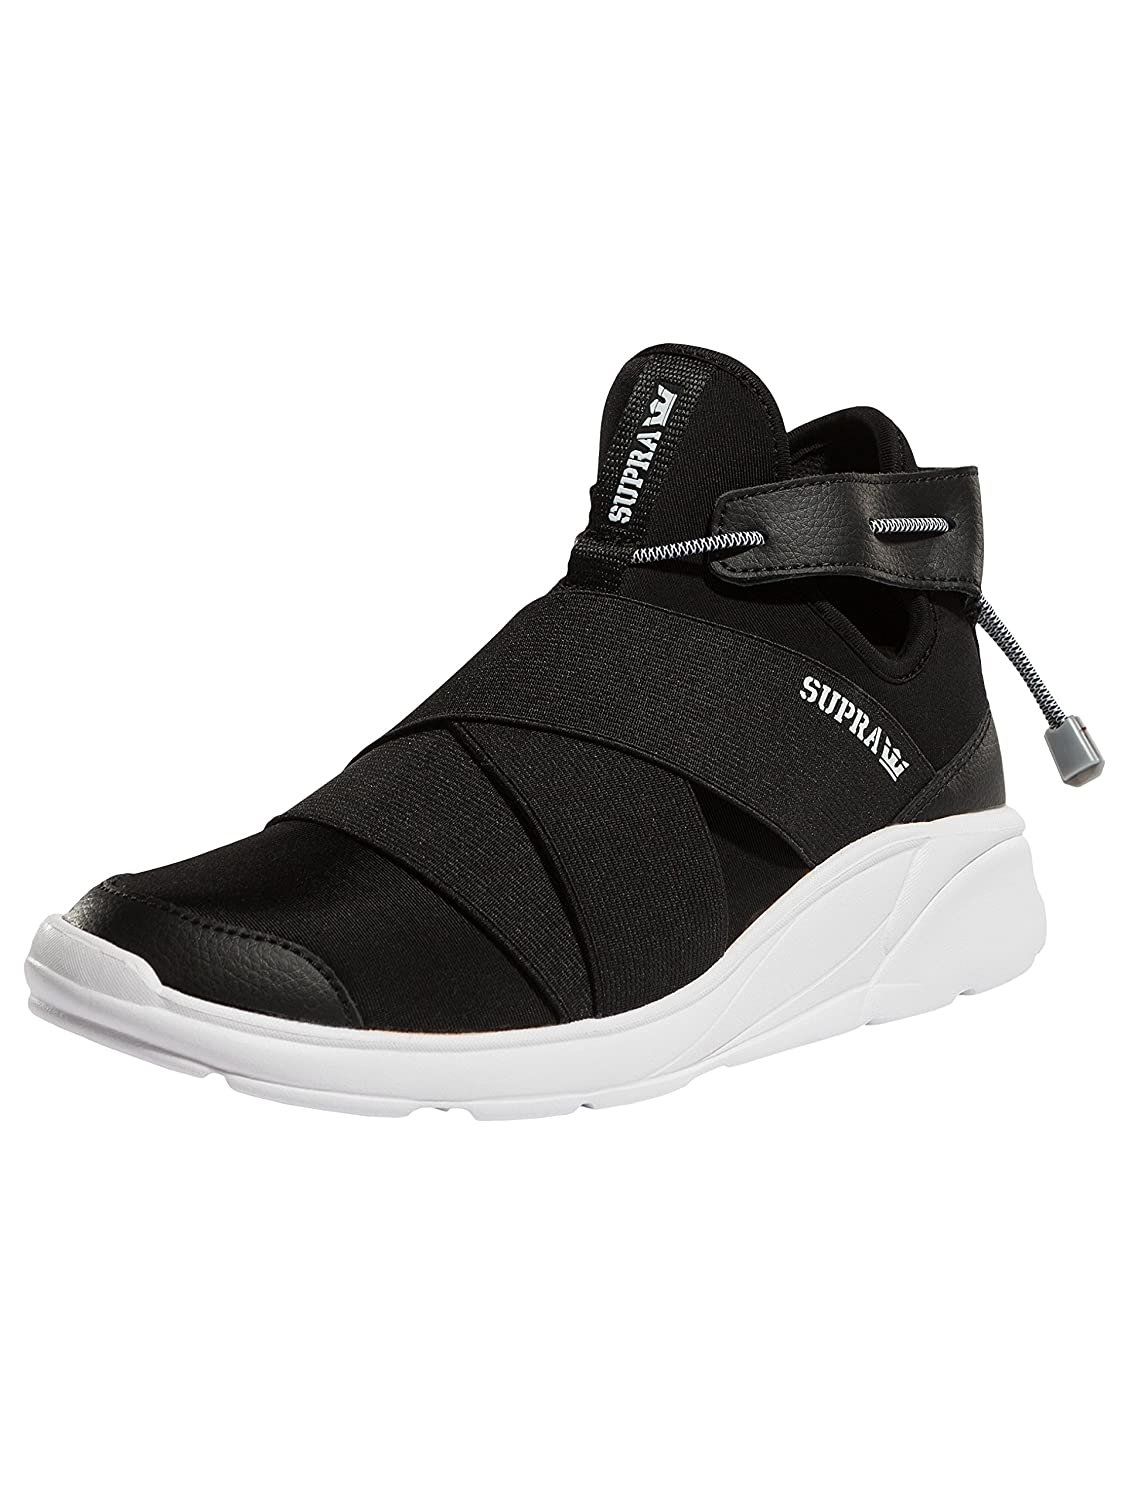 Supra Women's Anevay Shoes B074KHWDF2 6.5 M US|Black-white